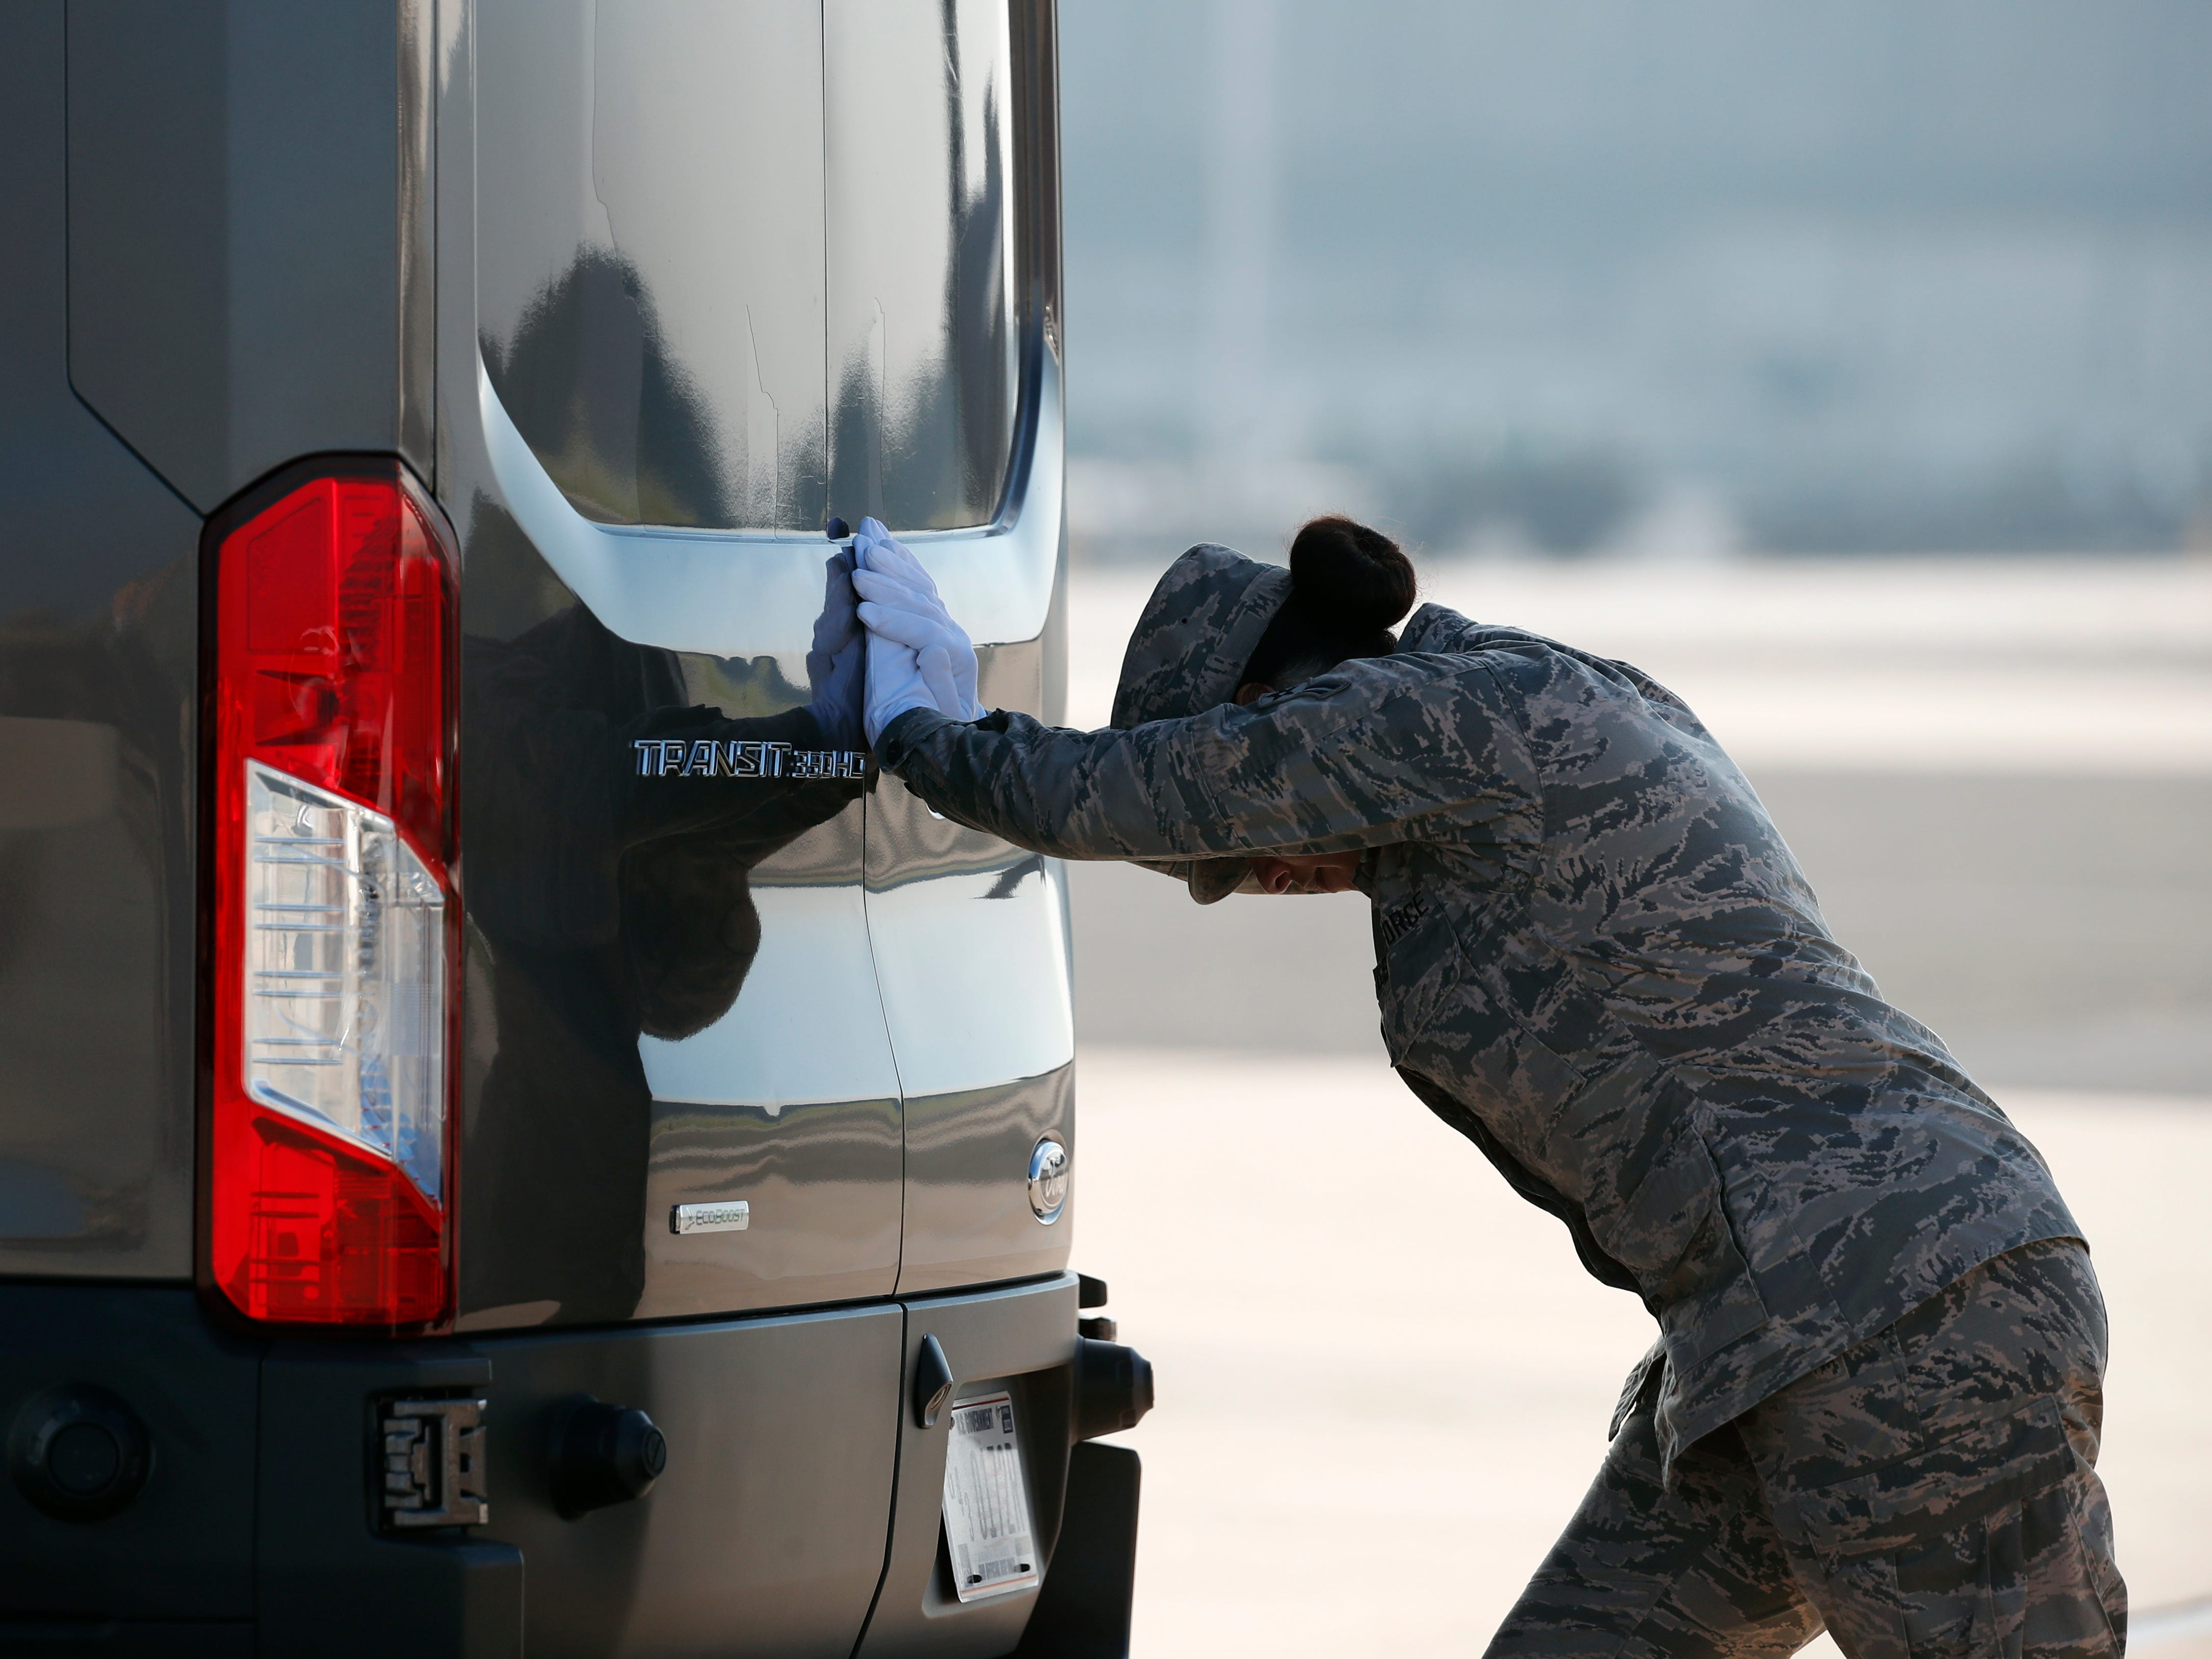 Airman 1st Class Italia Sampson closes the door of a vehicle containing the transfer cases of U.S. Army Command Sgt. Maj. Timothy A. Bolyard, and U.S. Army Staff Sgt. Diobanjo S. San Agustin, at Dover Air Force Base, Del.